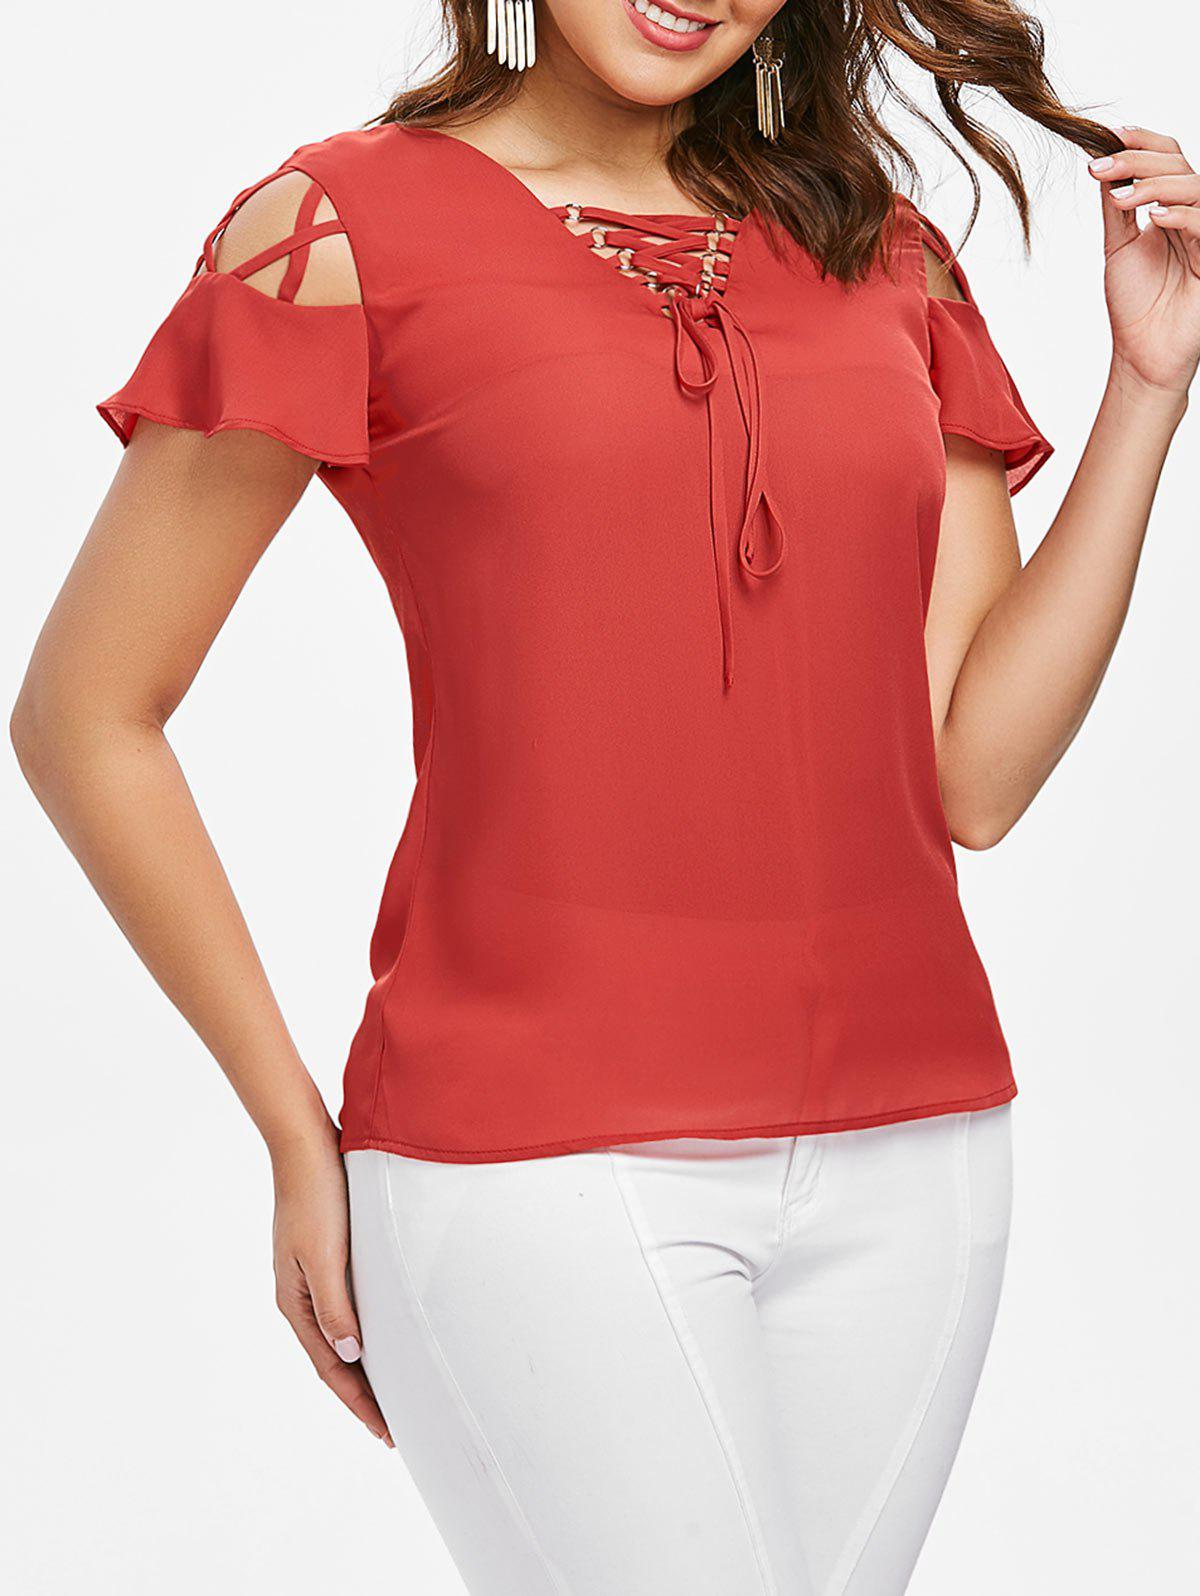 Store Criss Cross Cut Out Short Sleeve Blouse